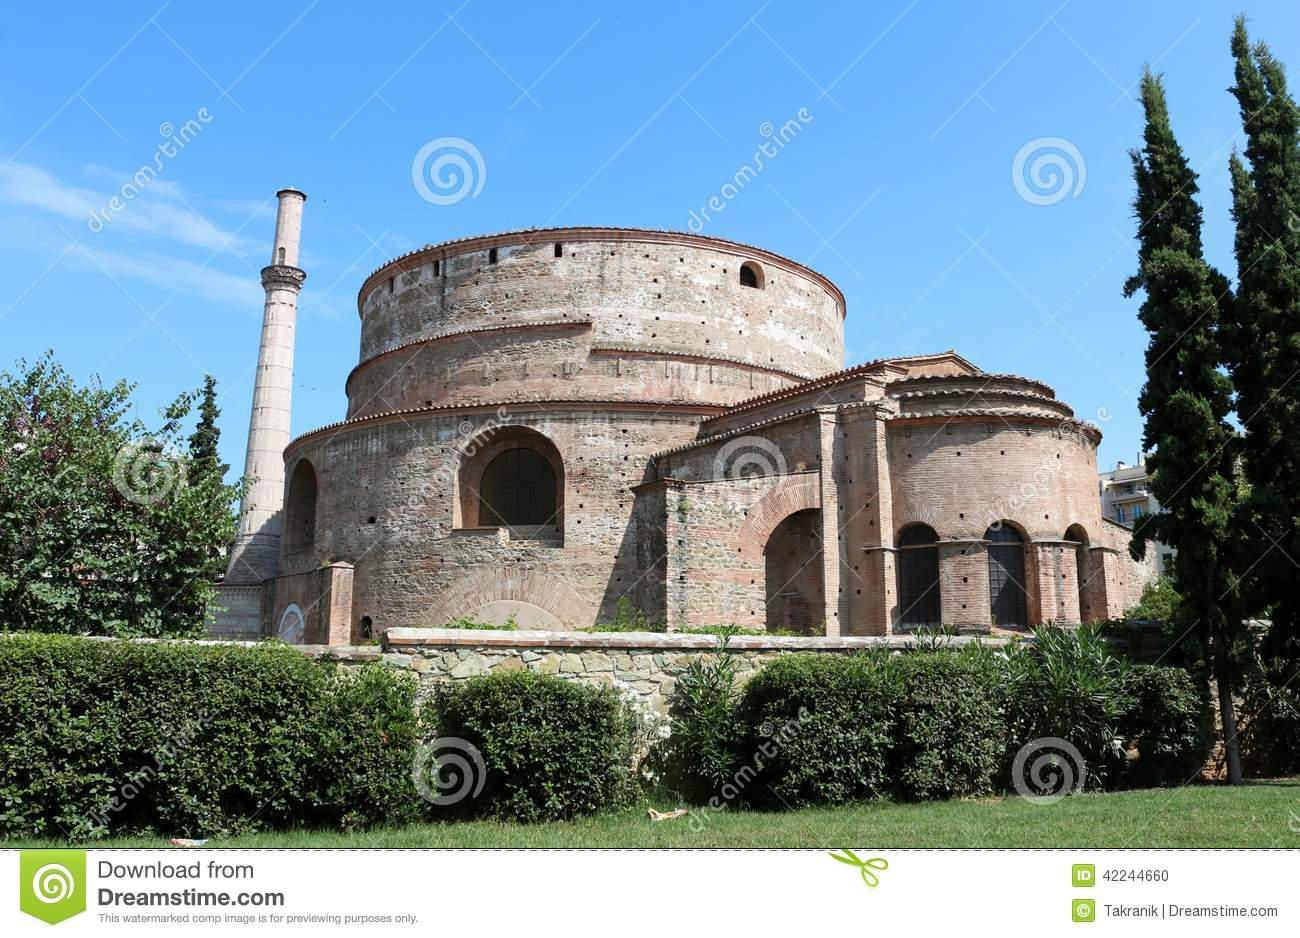 The rotunda is a temple, mausoleum or arbor 38